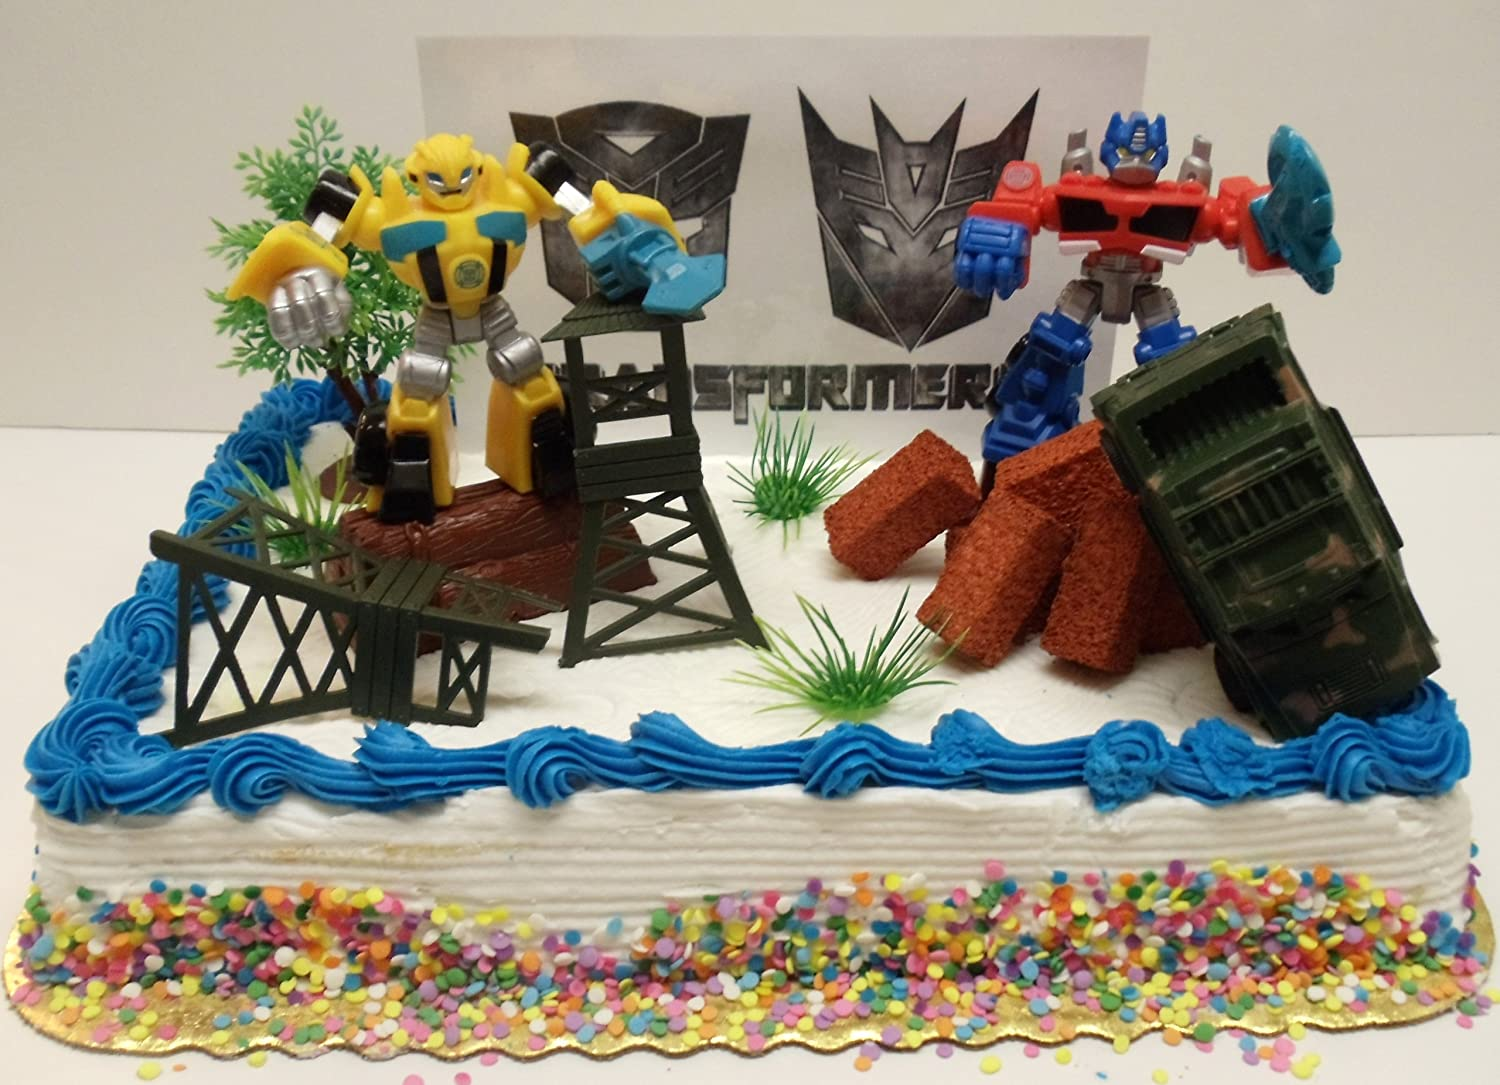 Amazon Transformers 10 Piece Birthday Cake Topper Set Featuring Bumblebee And Optimus Prime Figures With Themed Decorative Accessories